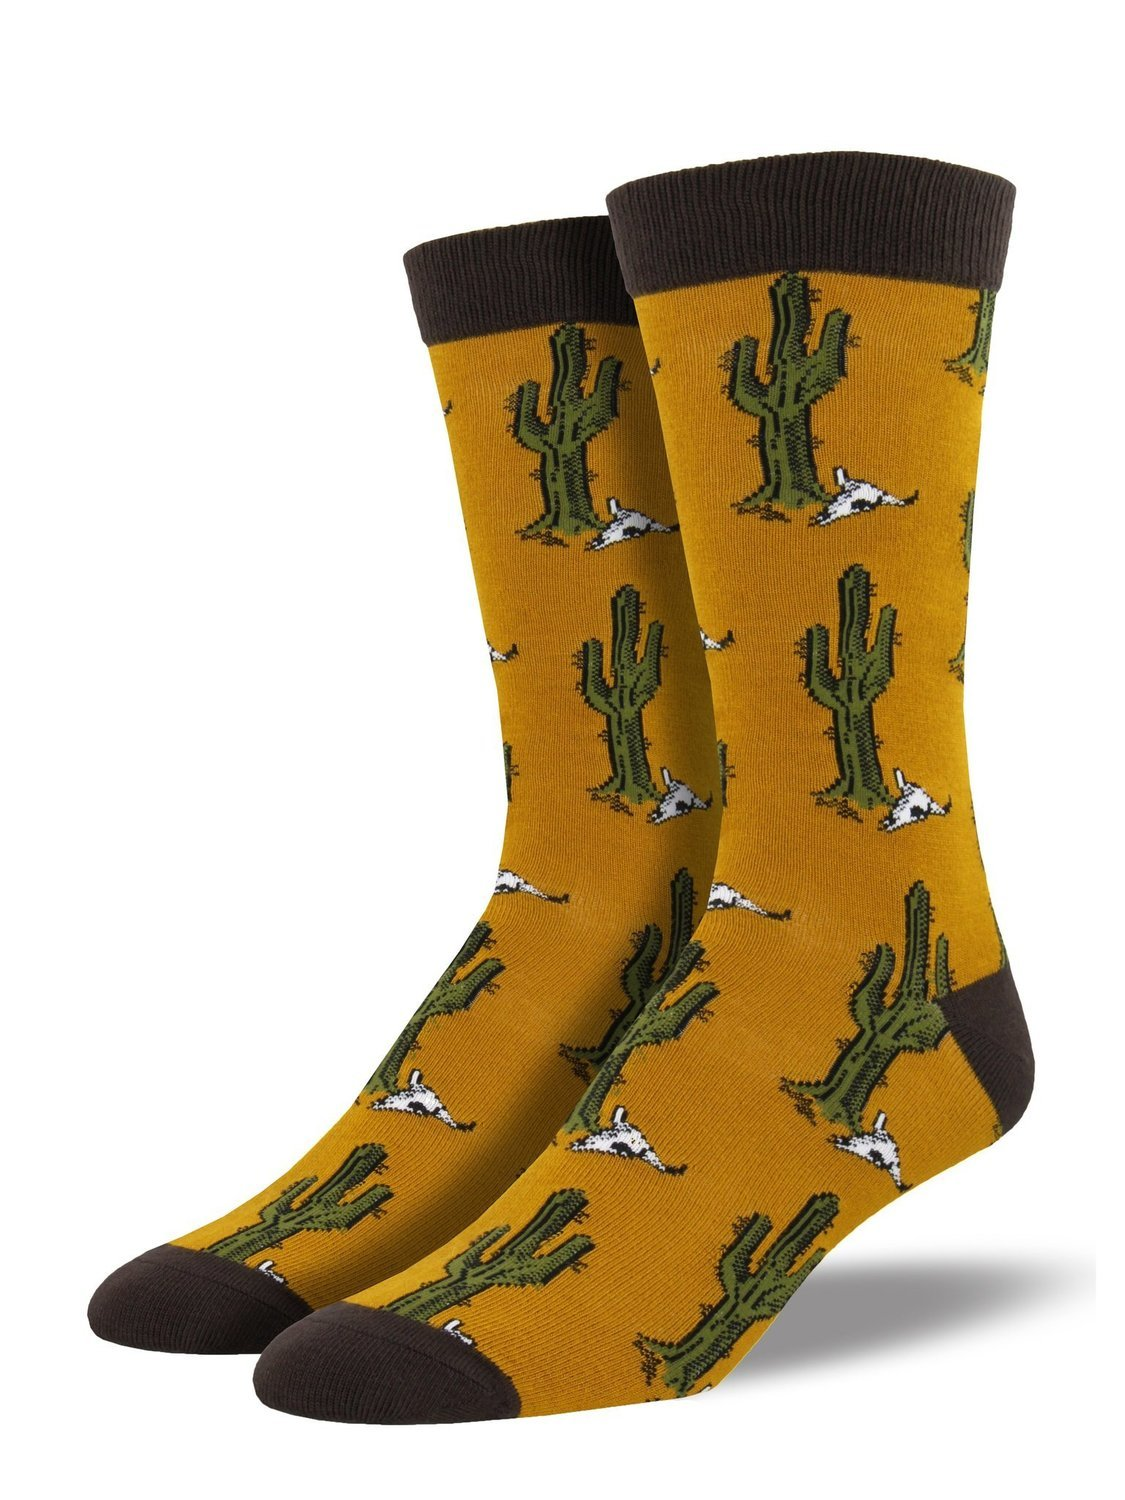 Sock Smith Bamboo Desert Cactus Men's Socks